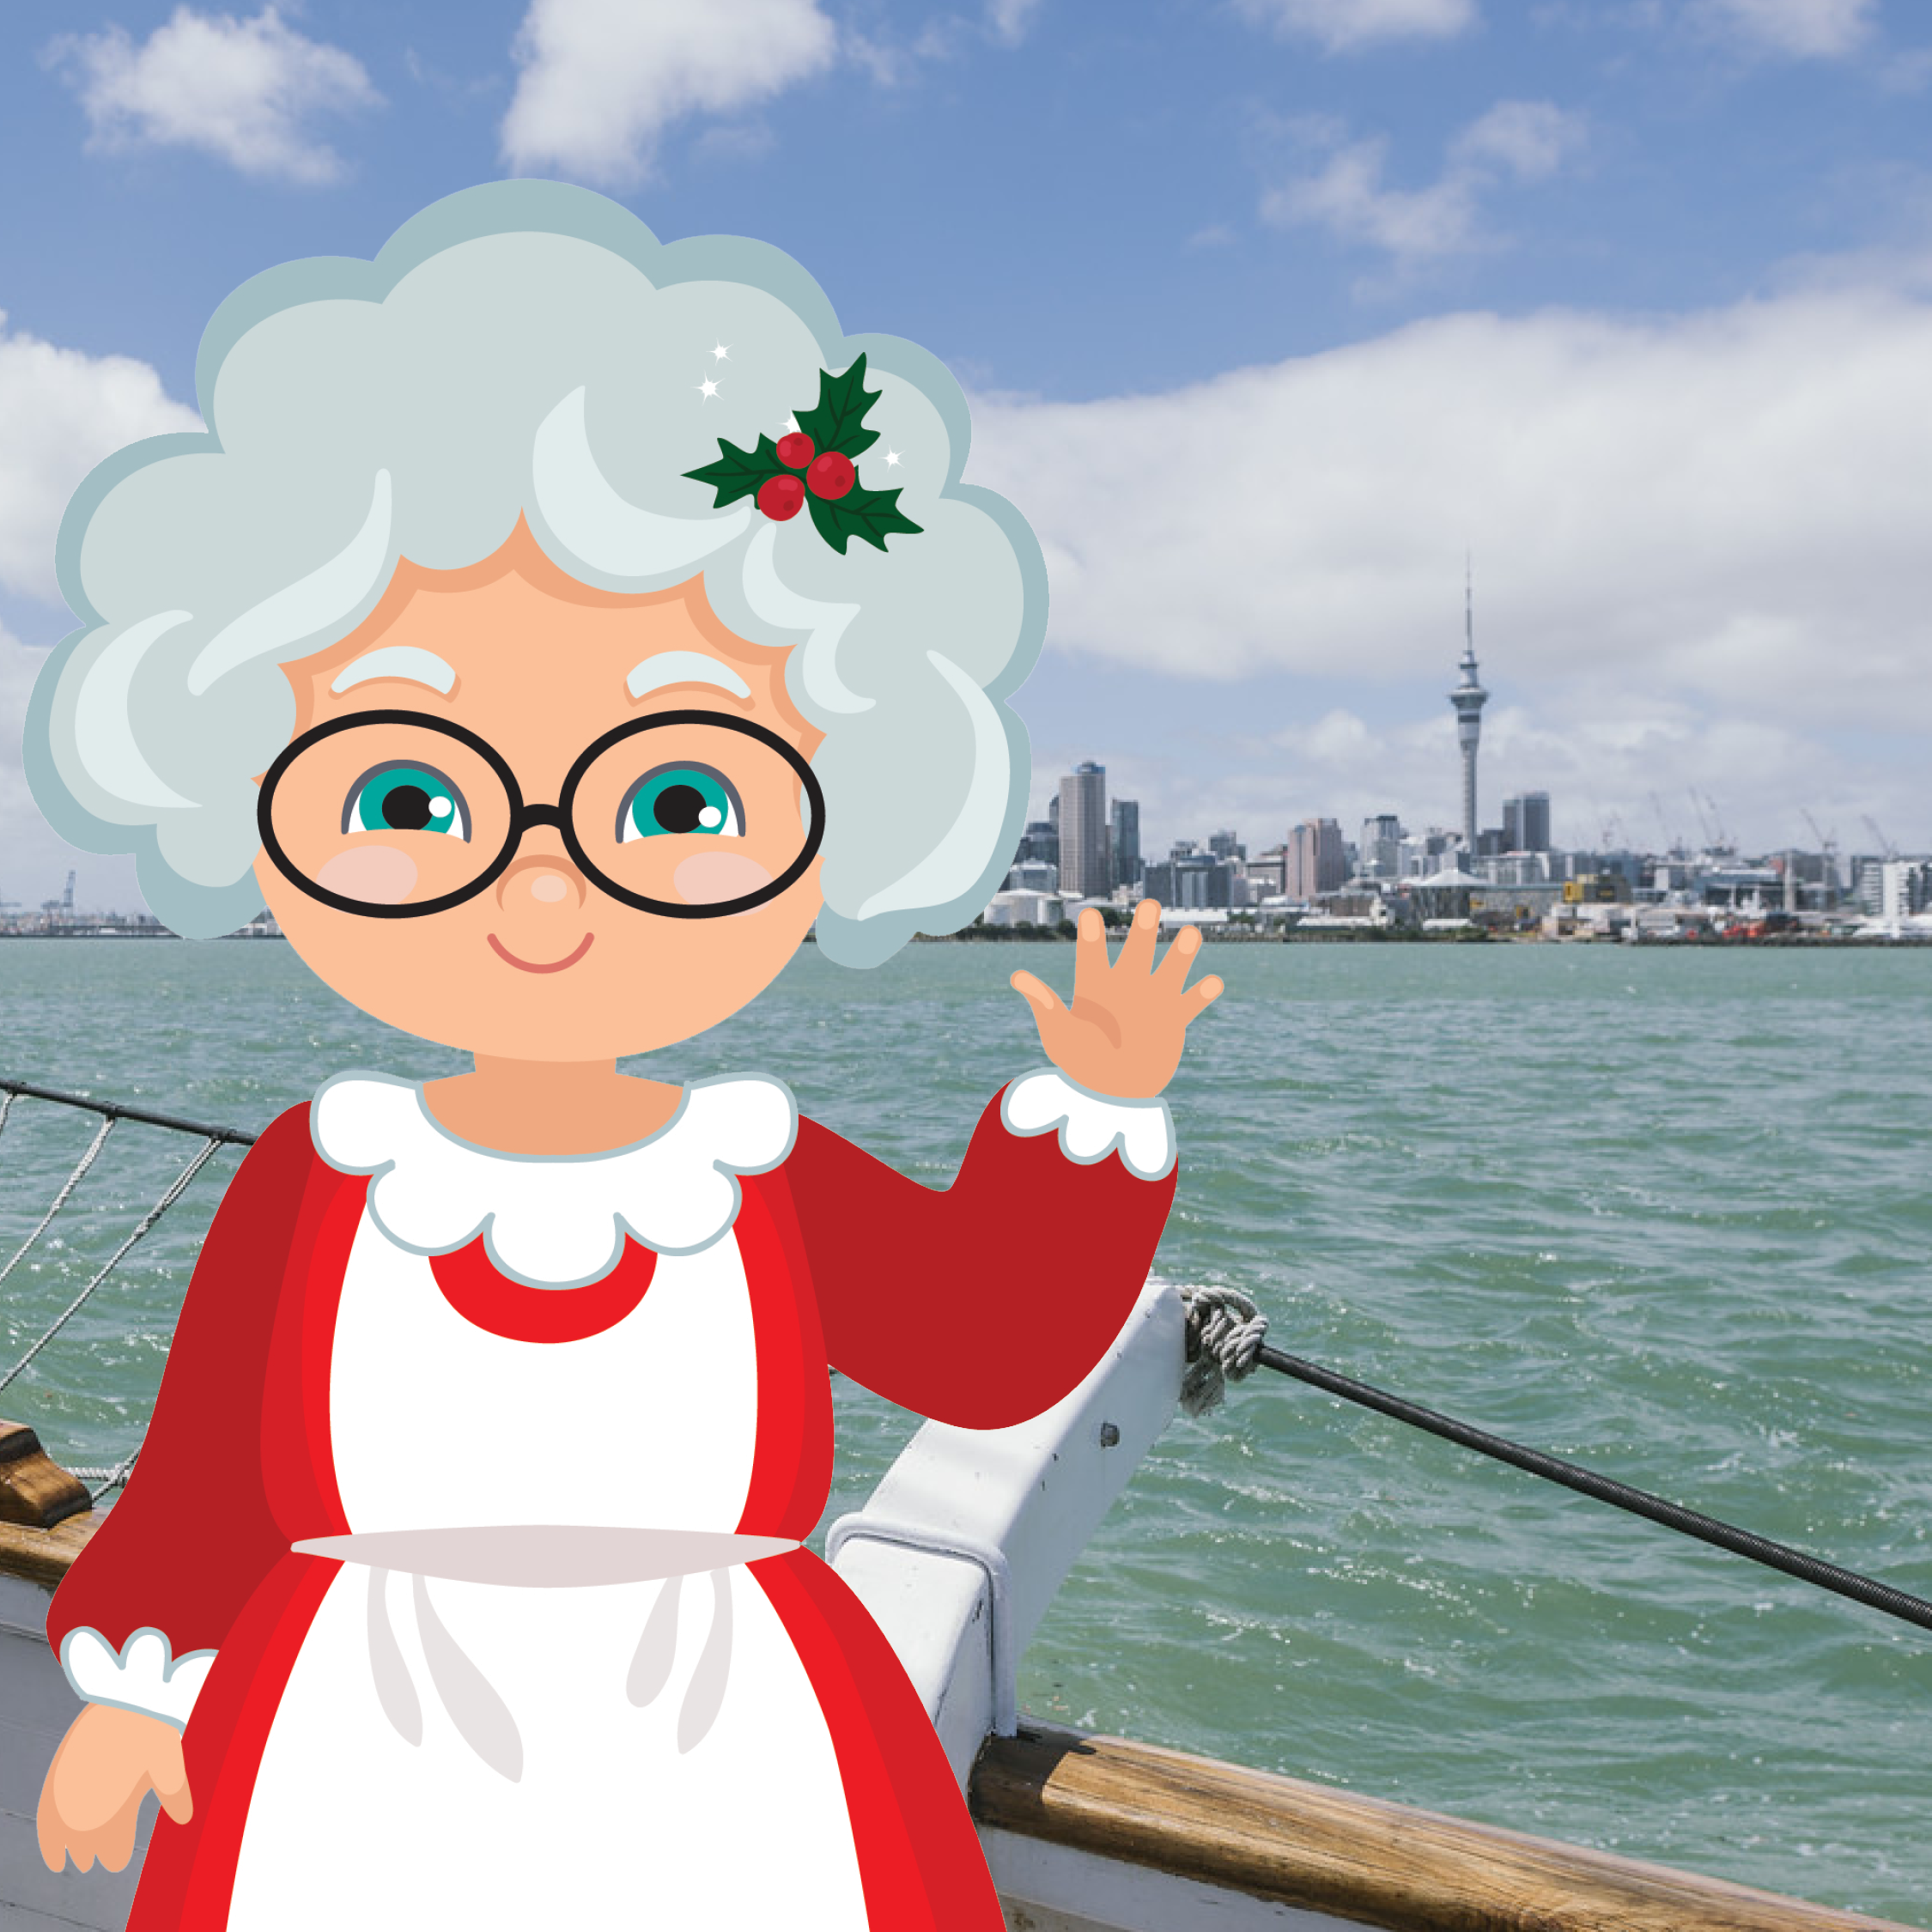 https://rfacdn.nz/maritime/assets/media/mrs-clause-thumbnail.png